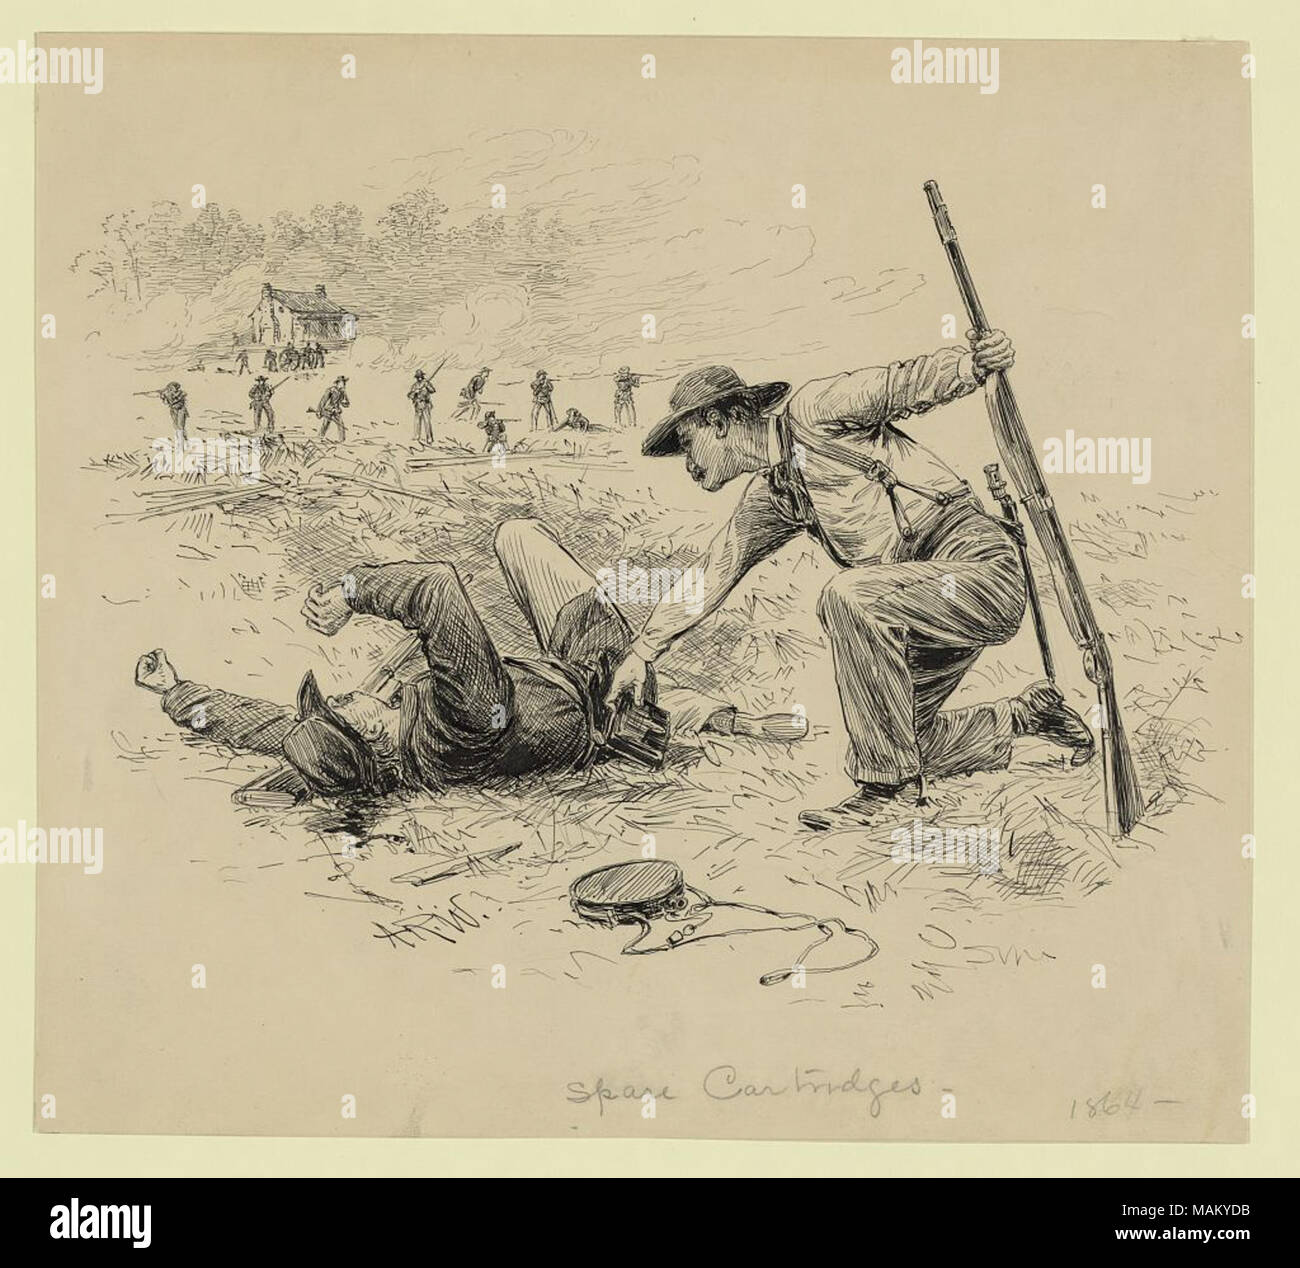 A soldier taking cartridge pouch from dead soldier others shooting in background probably drawn after war time pencil sketch for postwar illustrated